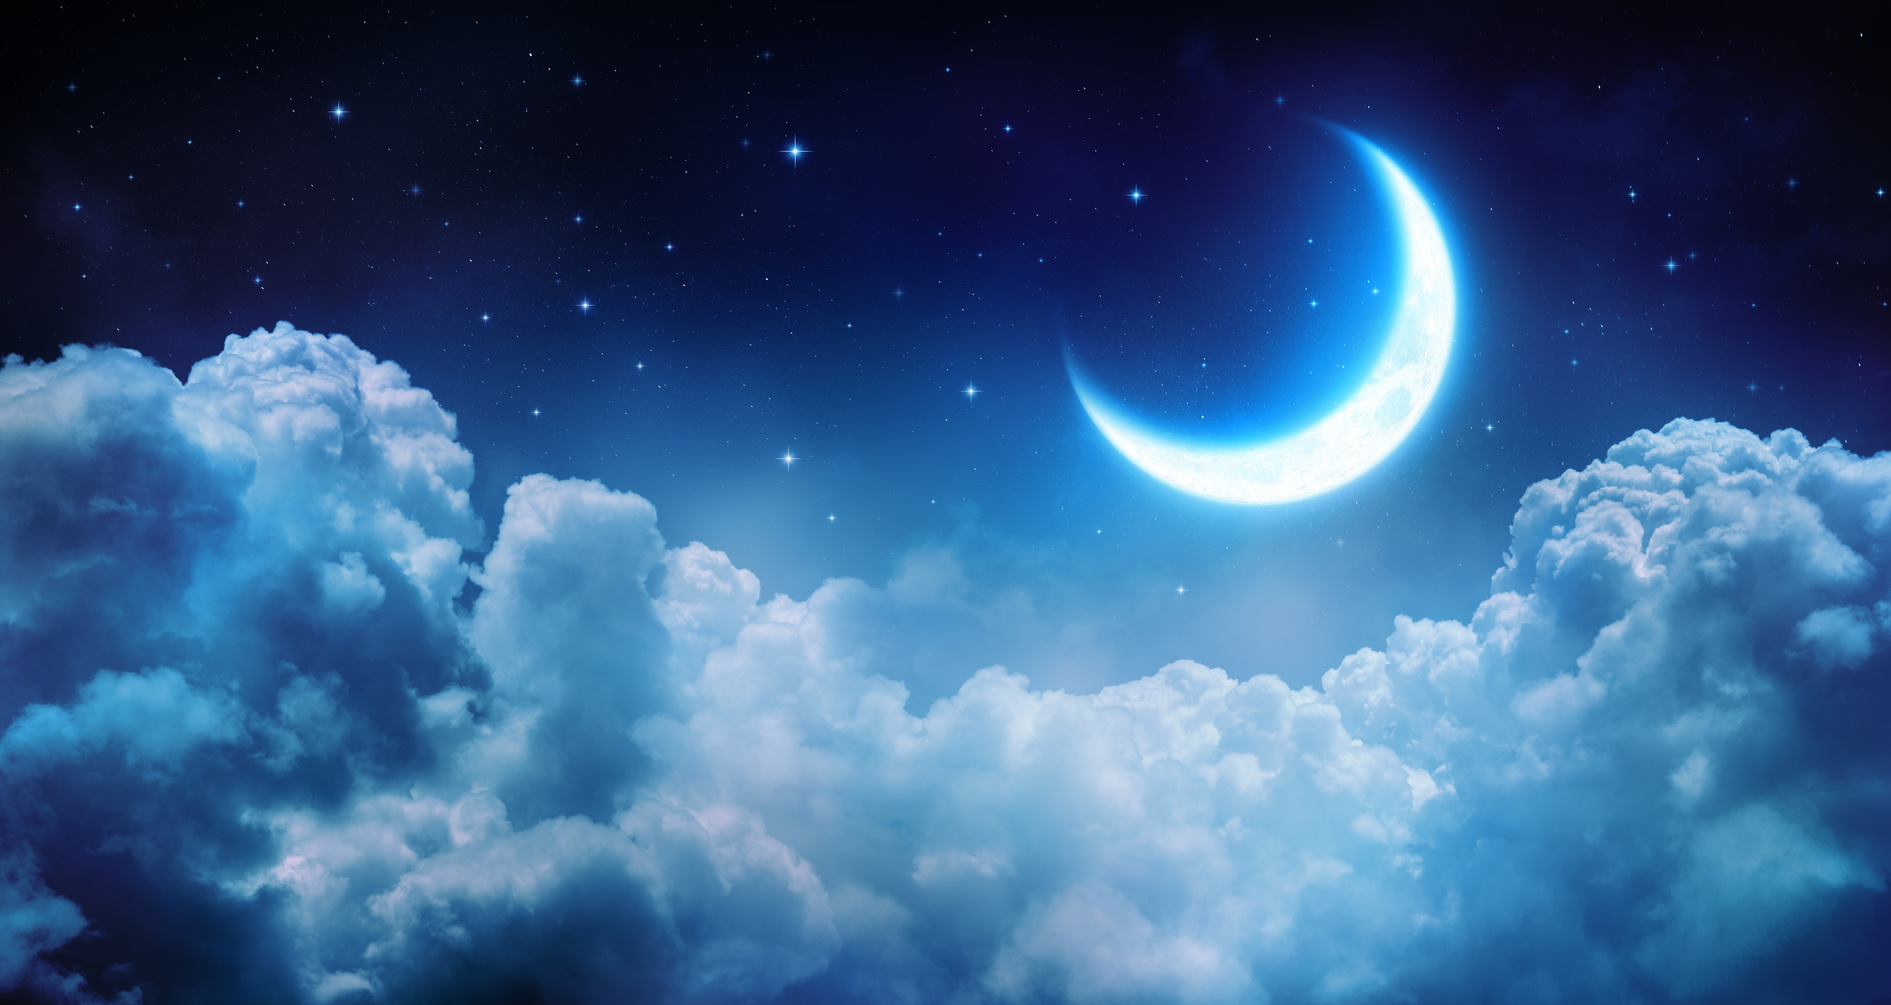 Moon-in-blue-sky-over-clouds-for-sleep-article.jpg